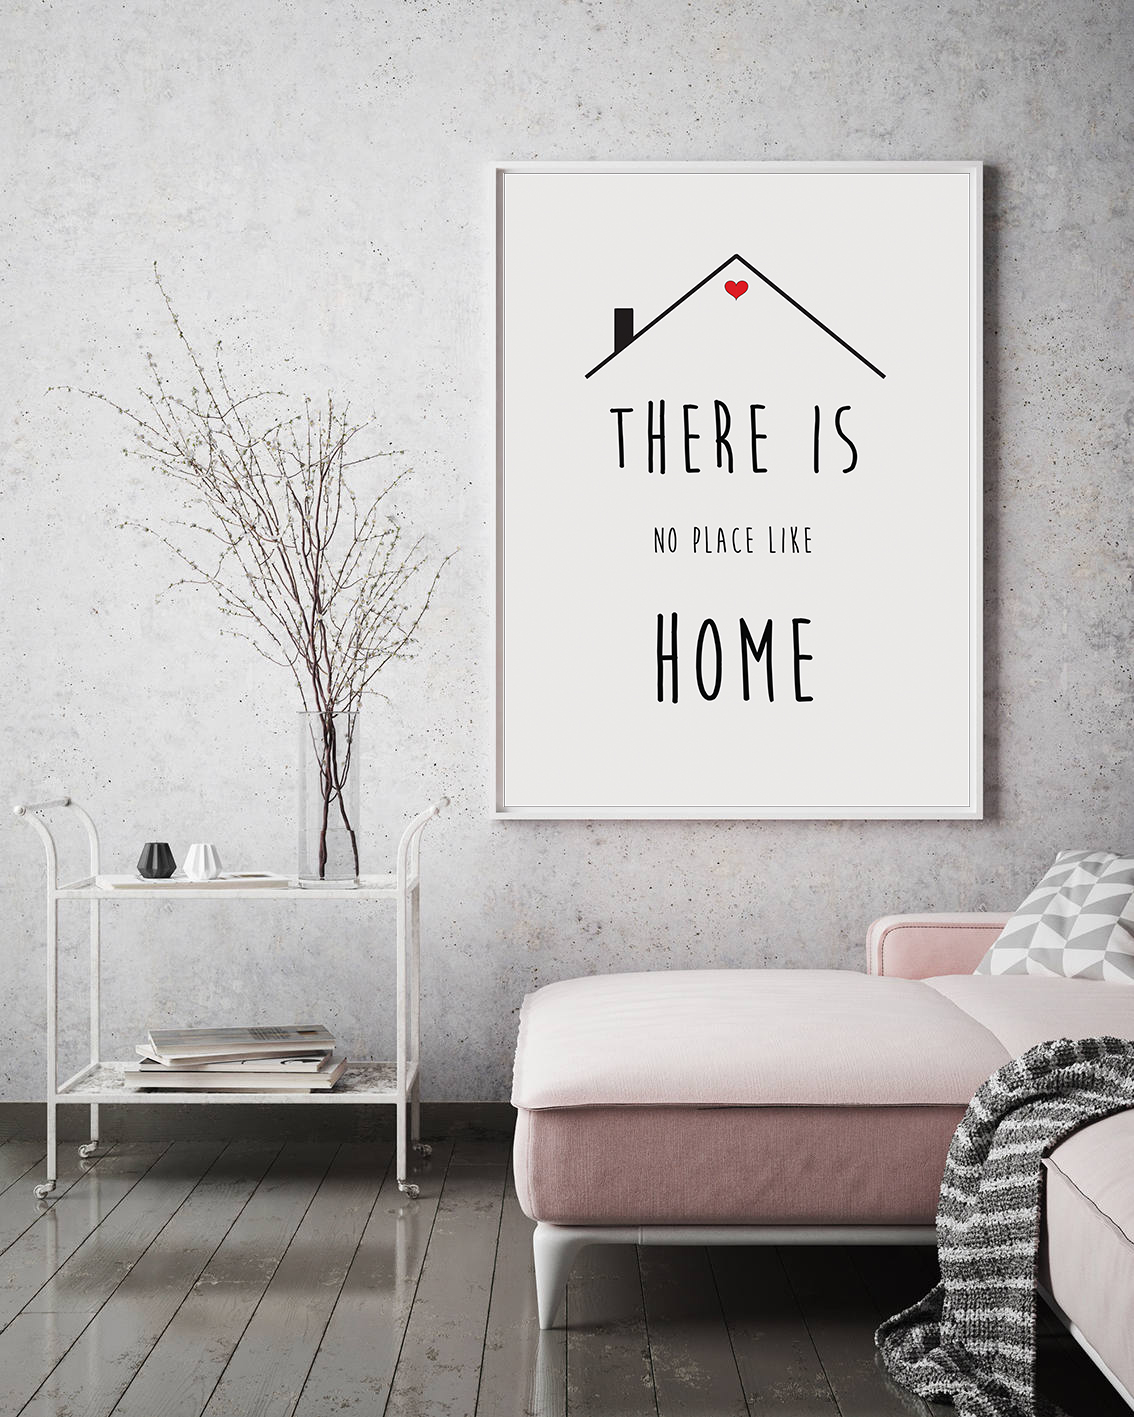 Minimalist Wall Art Quotes, Printable Home Quotes Poster example image 3